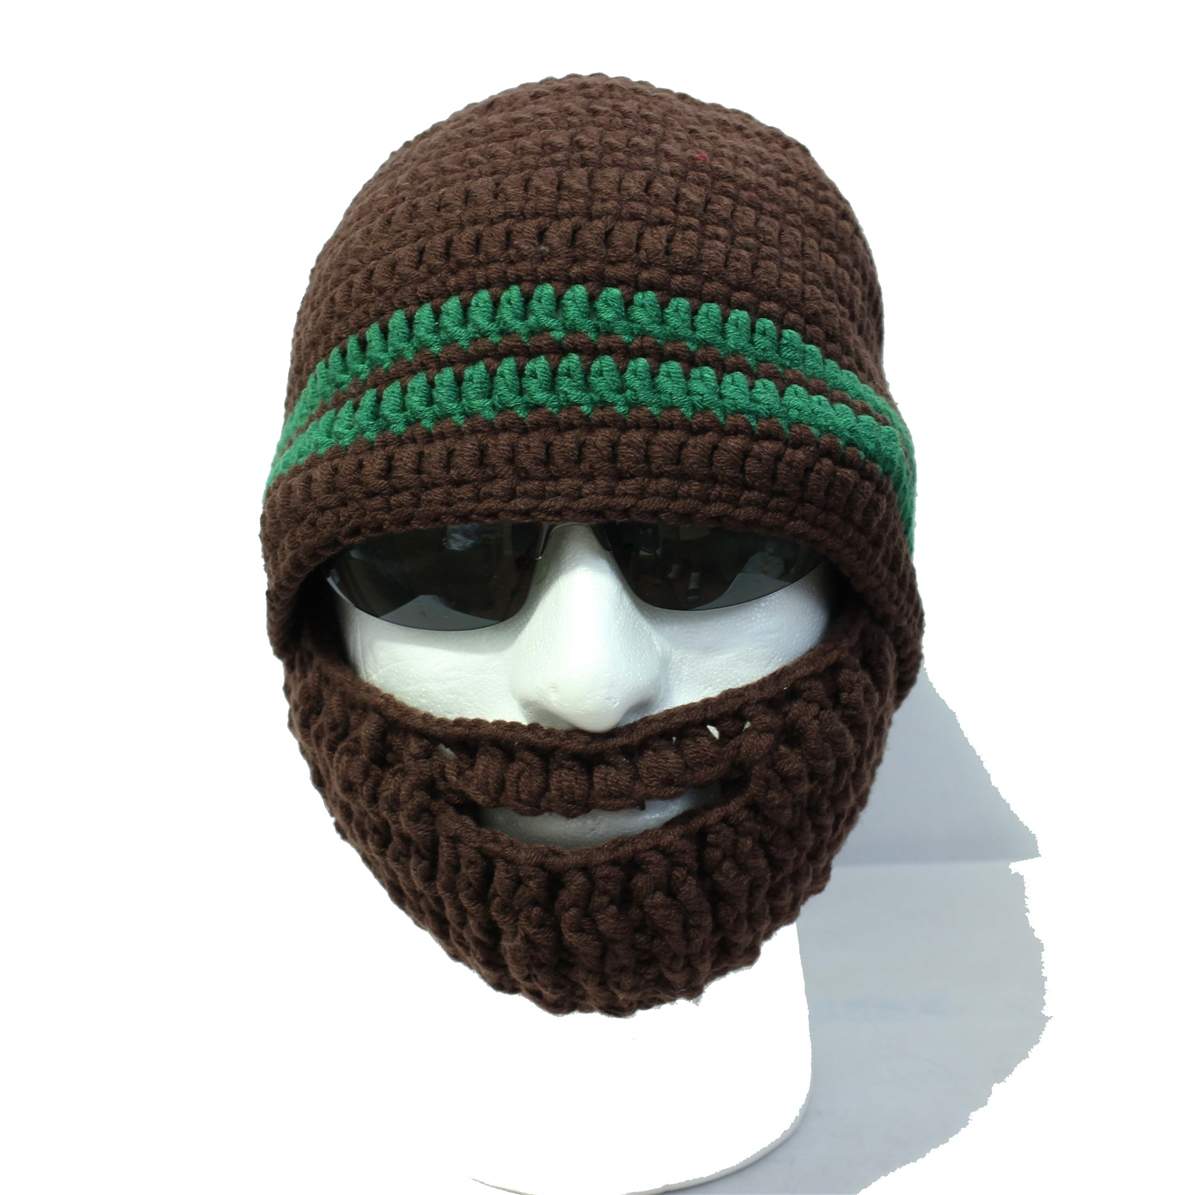 e3dcb3cb755 Crocheted Brown Beard Hat with Two Green Stripes · Larger Photo ...